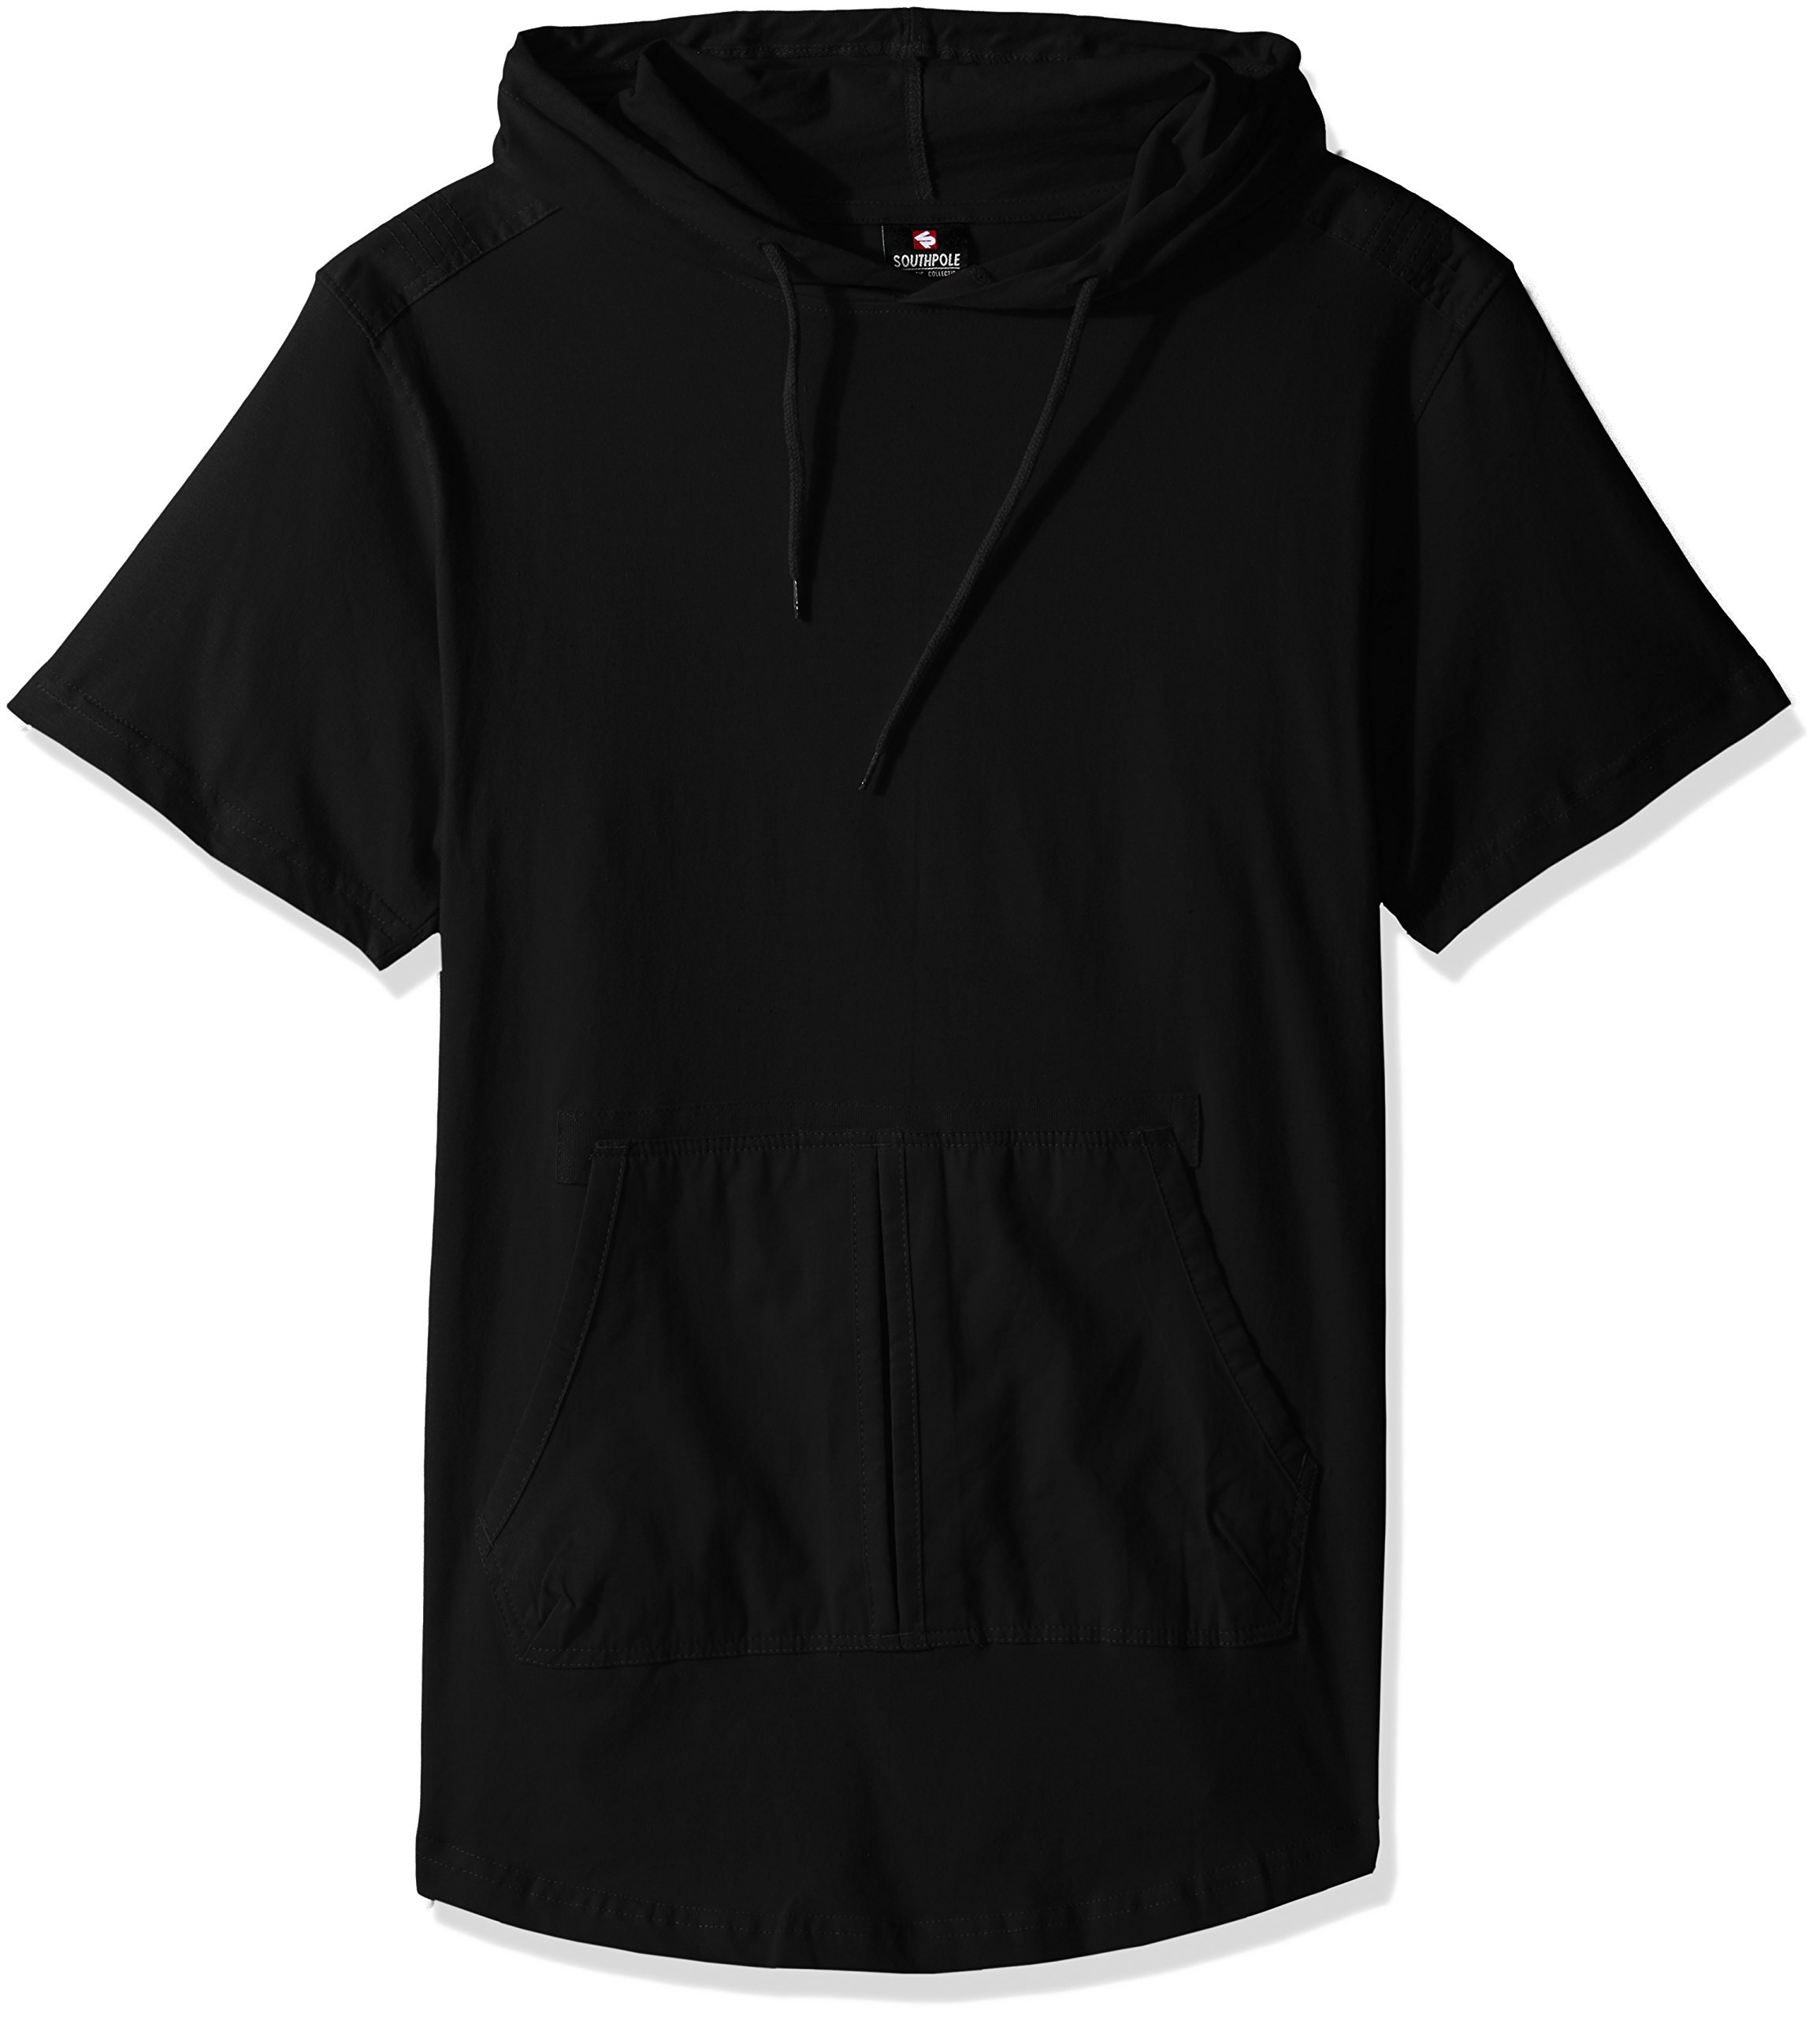 Southpole Men's Short Sleeve Hooded Scallop Tee with Fine Twill Detail, Black, Large